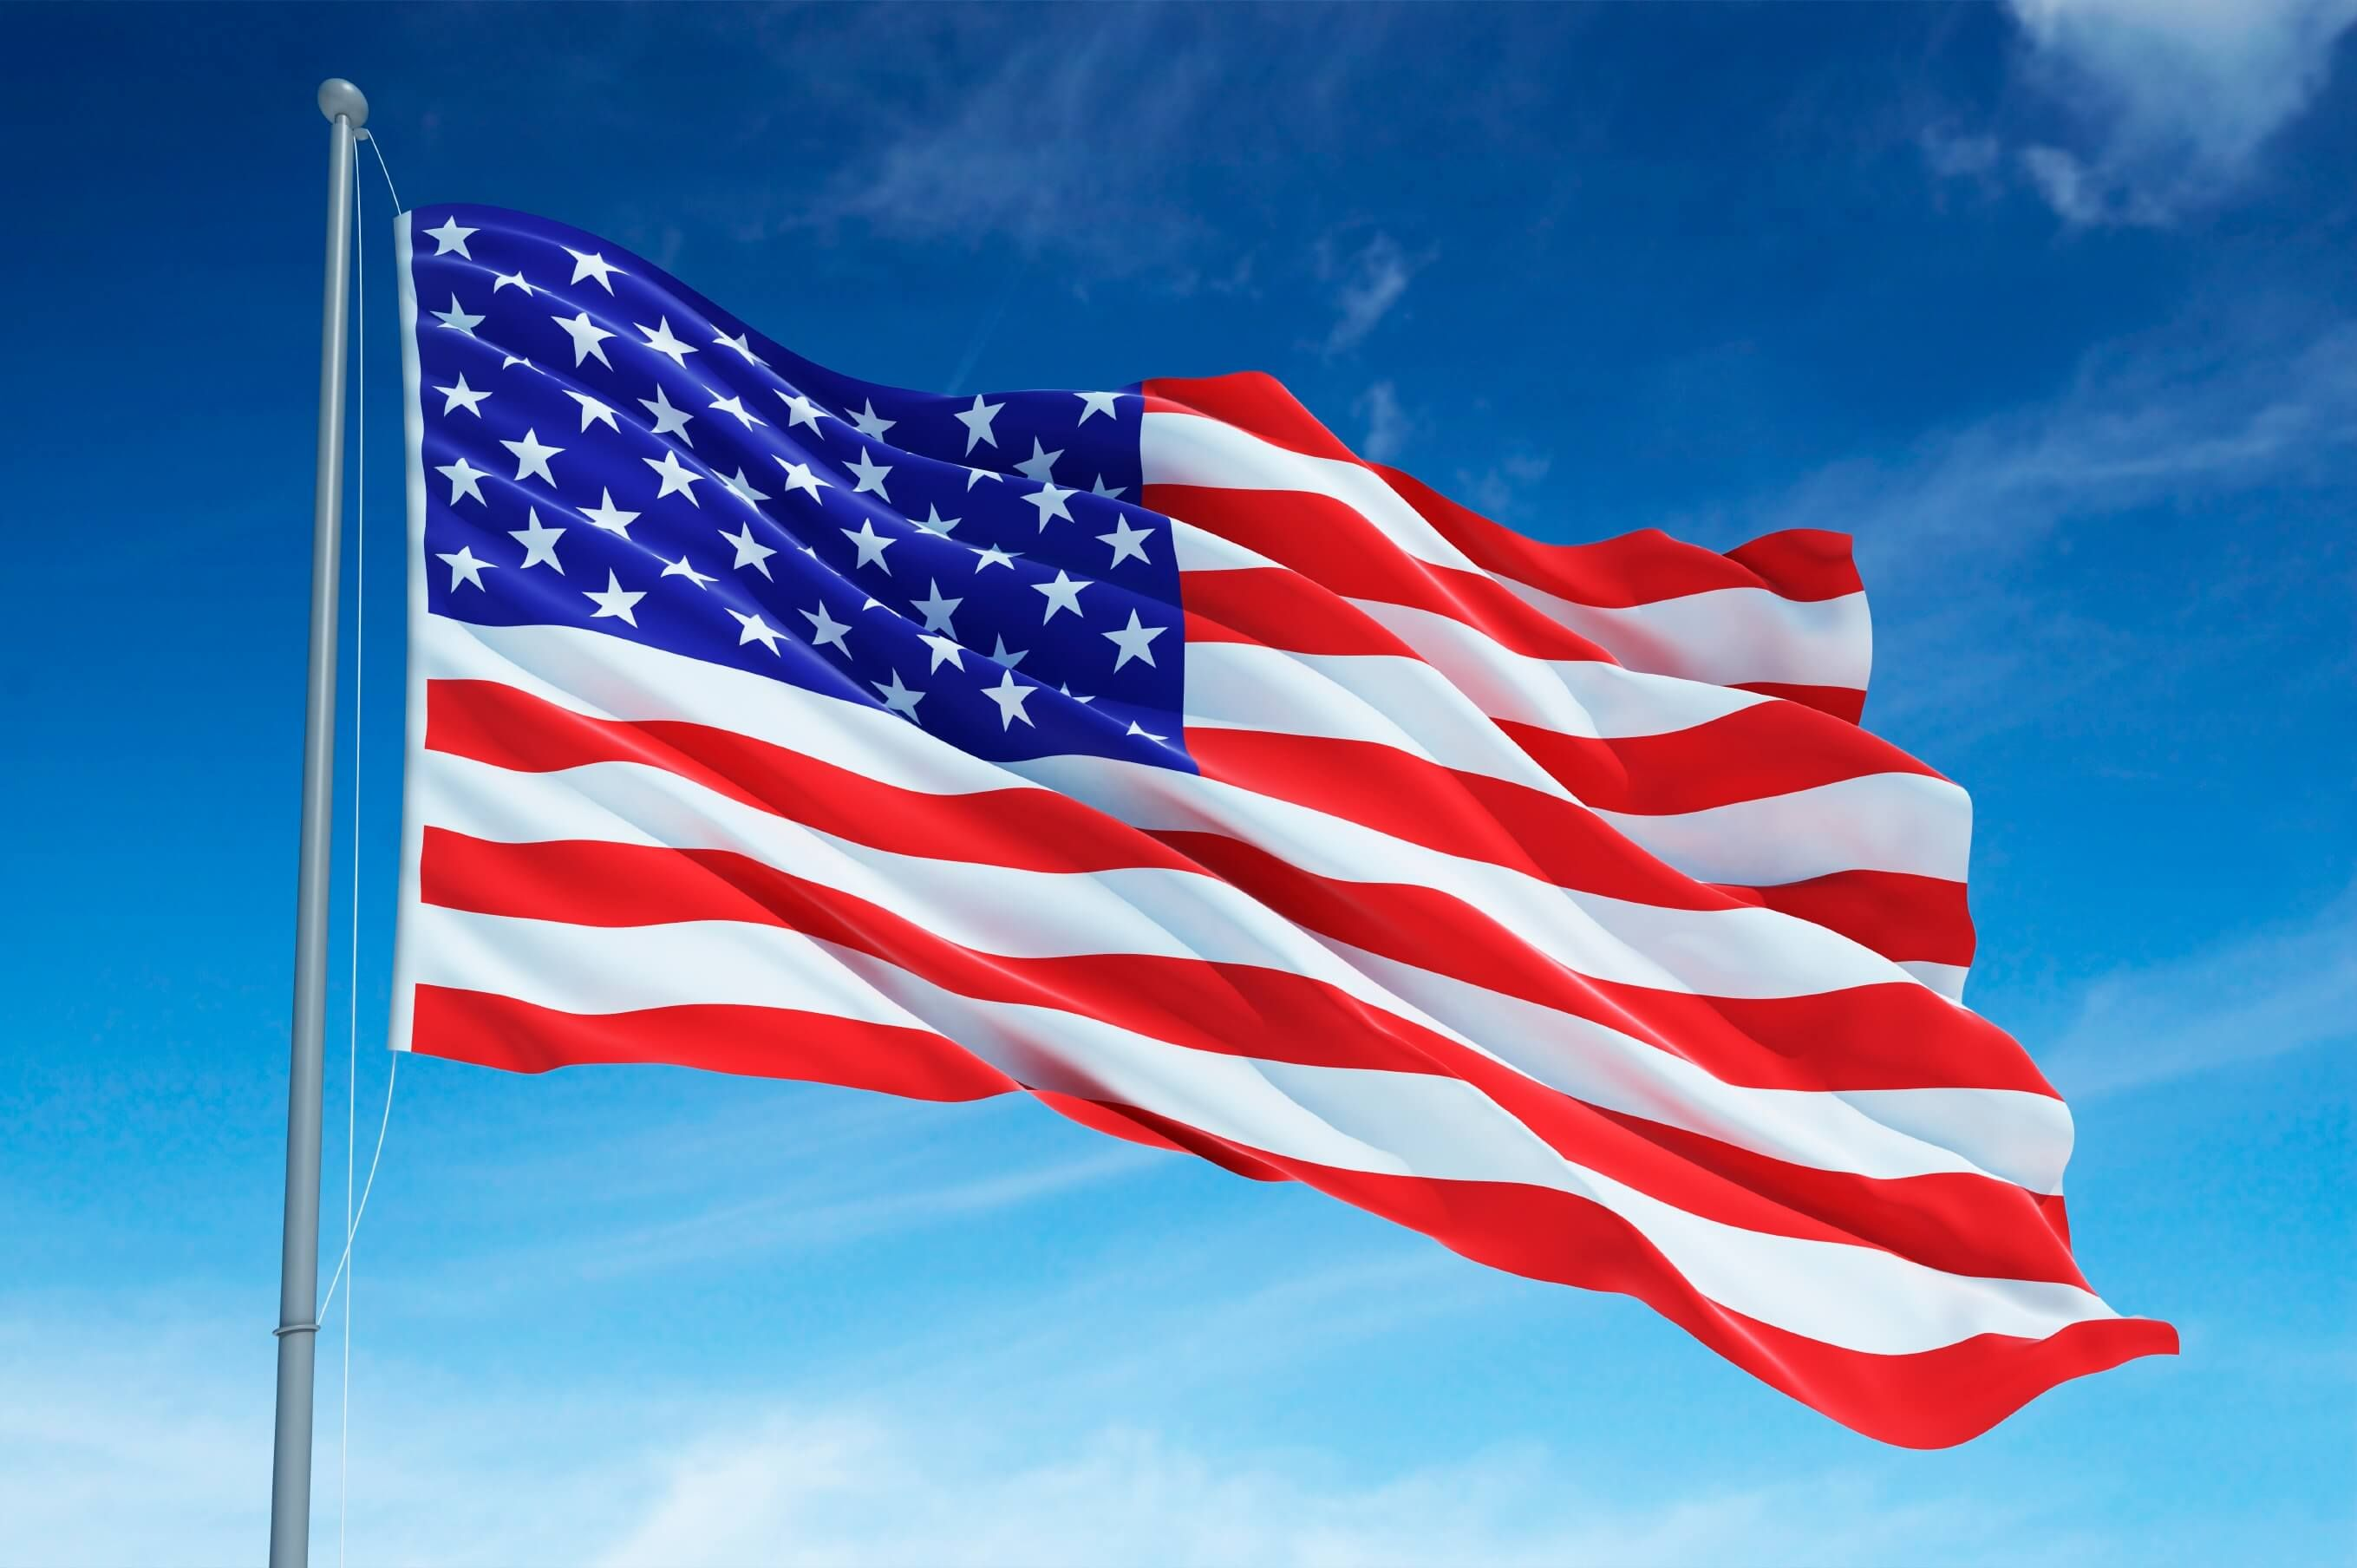 The Beautiful American Flag American Flag Pictures Usa Flag Wallpaper American Flag Images